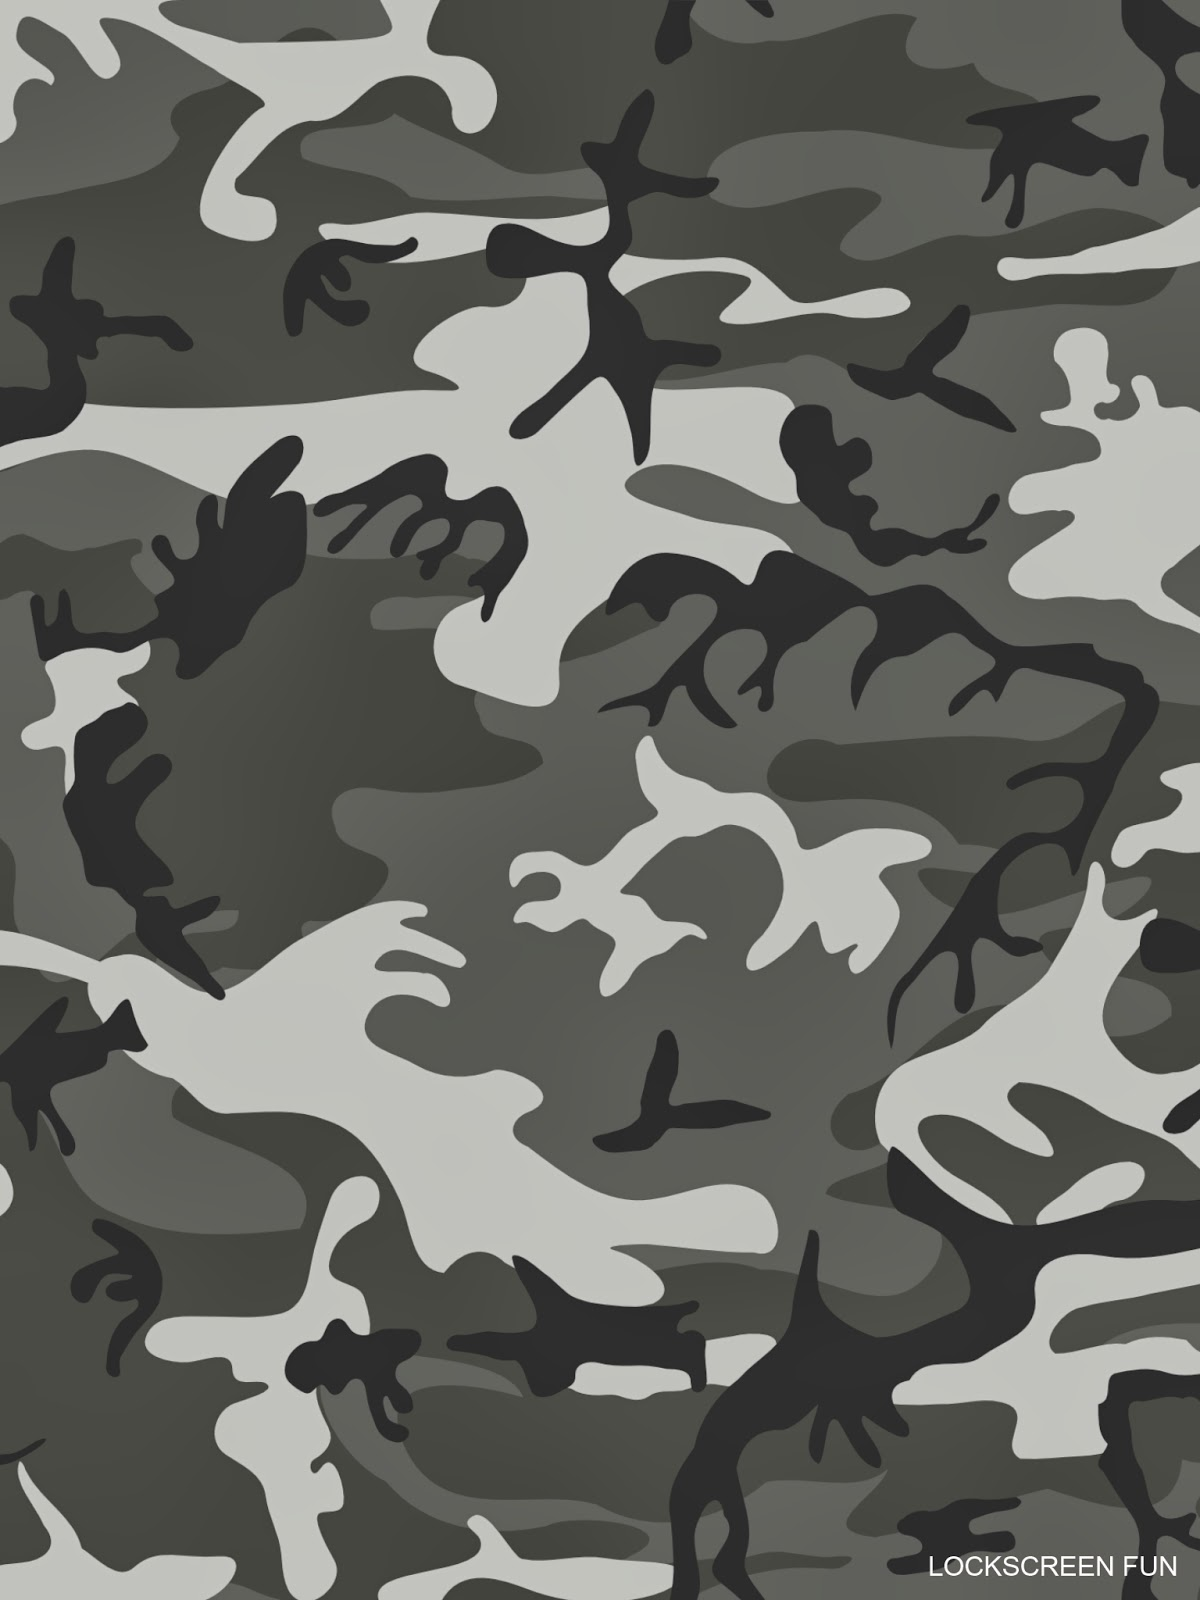 Camouflage wallpaper perfect for blending in click image to enlarge 1200x1600